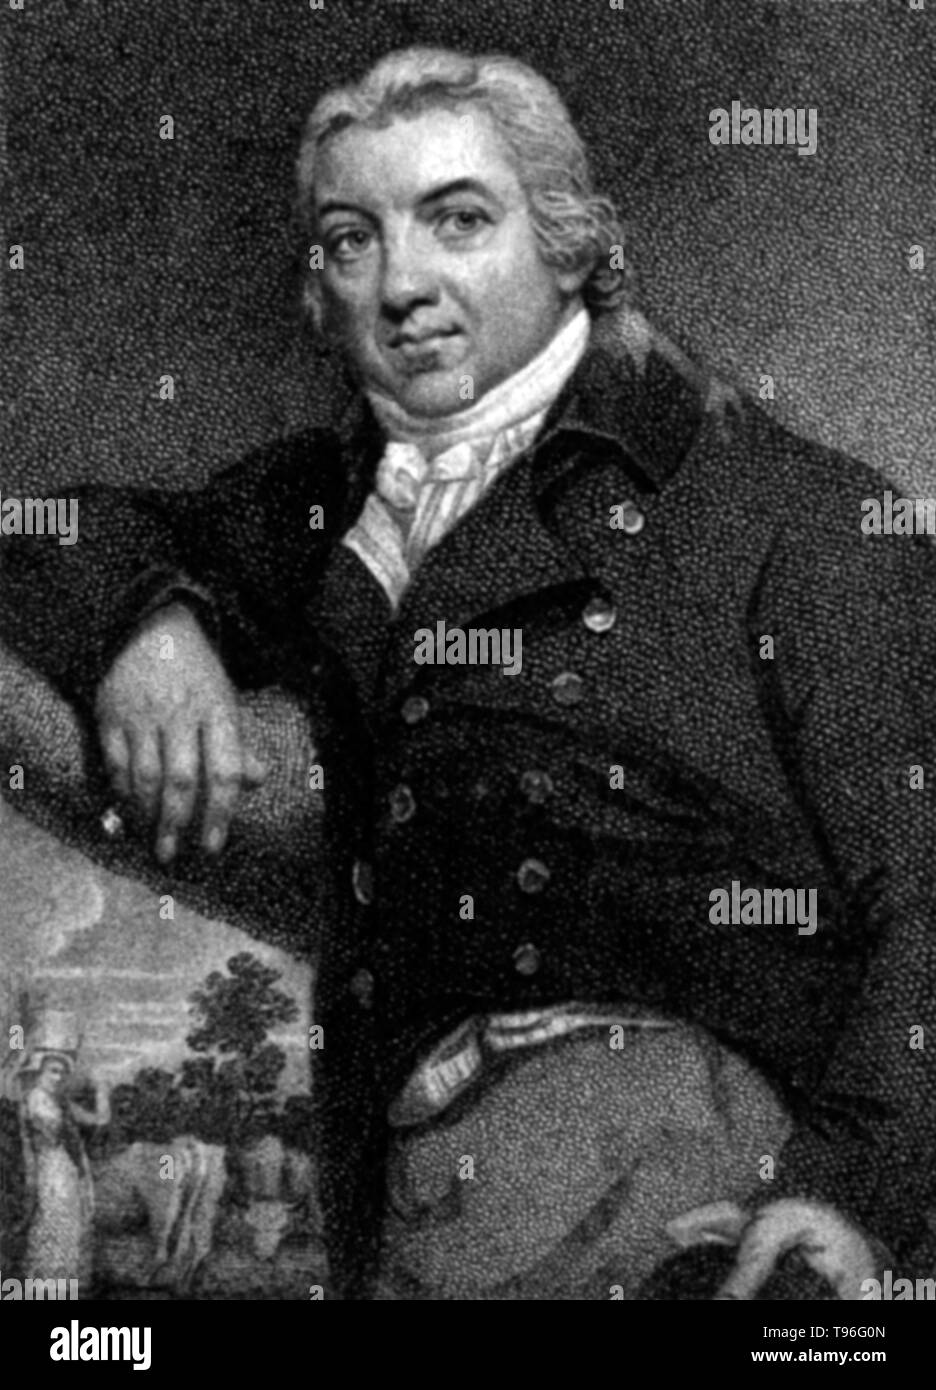 Edward Jenner (May 17, 1749 - January 26, 1823) was an English physician and scientist who was the pioneer of smallpox vaccine, the world's first vaccine. His work is said to have saved more lives than the work of any other human. In Jenner's time, smallpox killed around 10 percent of the population, with the number as high as 20 percent in towns and cities where infection spread more easily. In 1821 he was appointed physician extraordinary to King George IV, and was also made mayor of Berkeley and justice of the peace. A member of the Royal Society, in the field of zoology he was the first pe - Stock Image